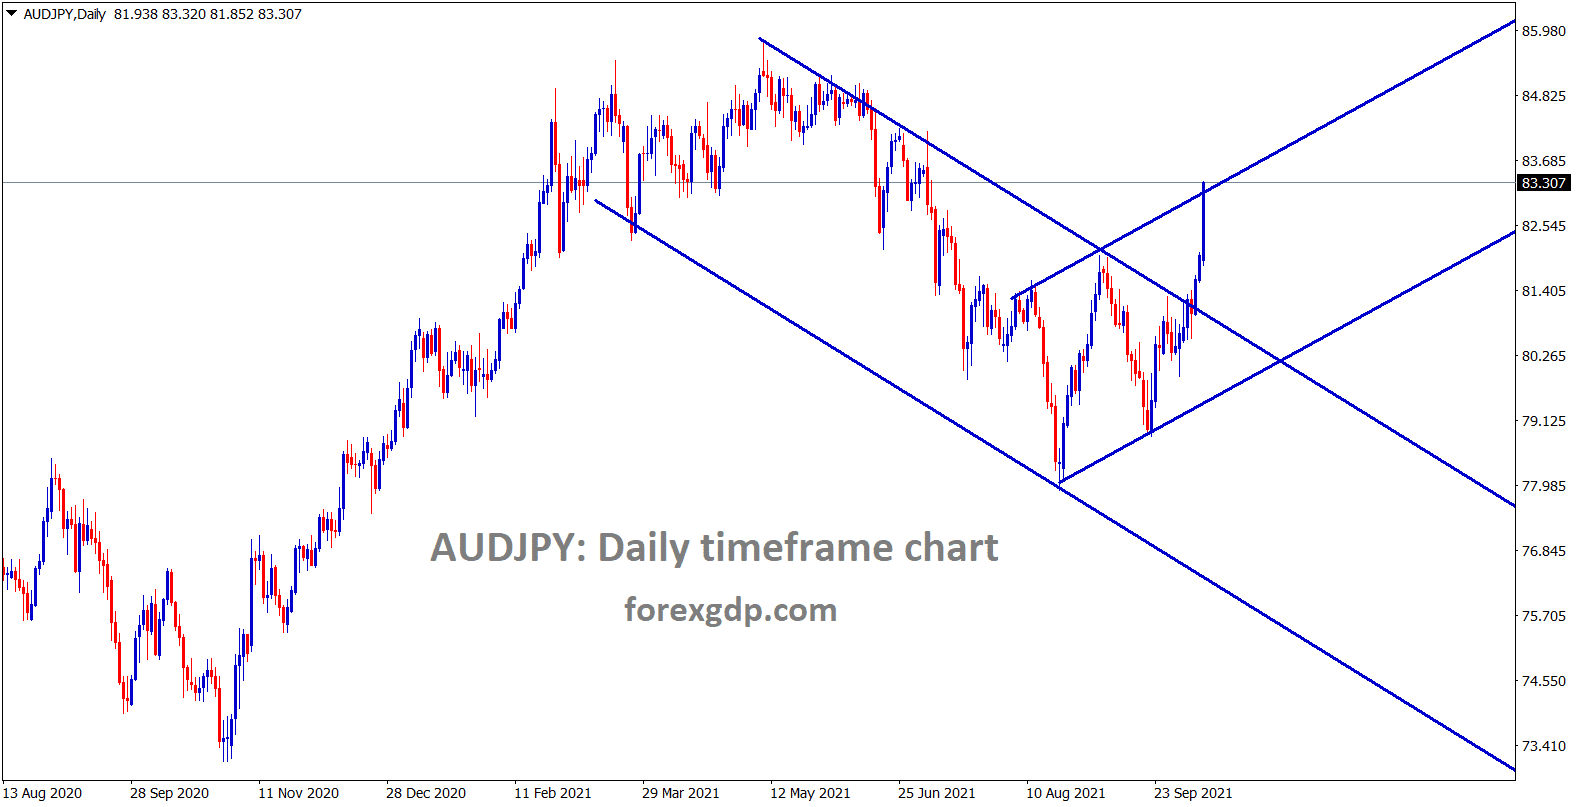 AUDJPY is moving in a strong uptrend